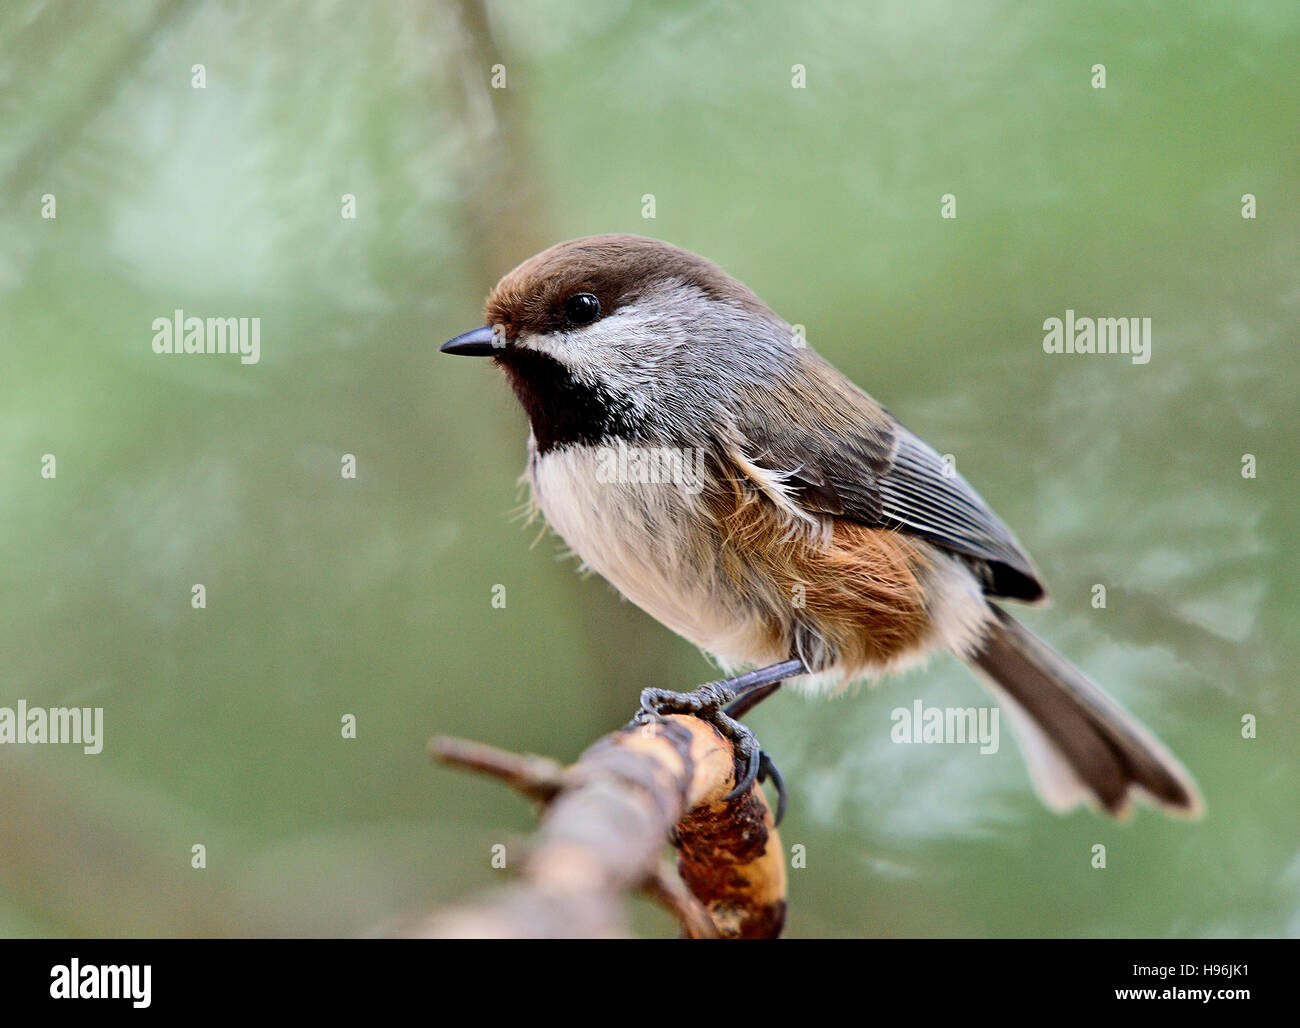 A wild Boreal Chickadee, Parus hudsonicus, - Stock Image